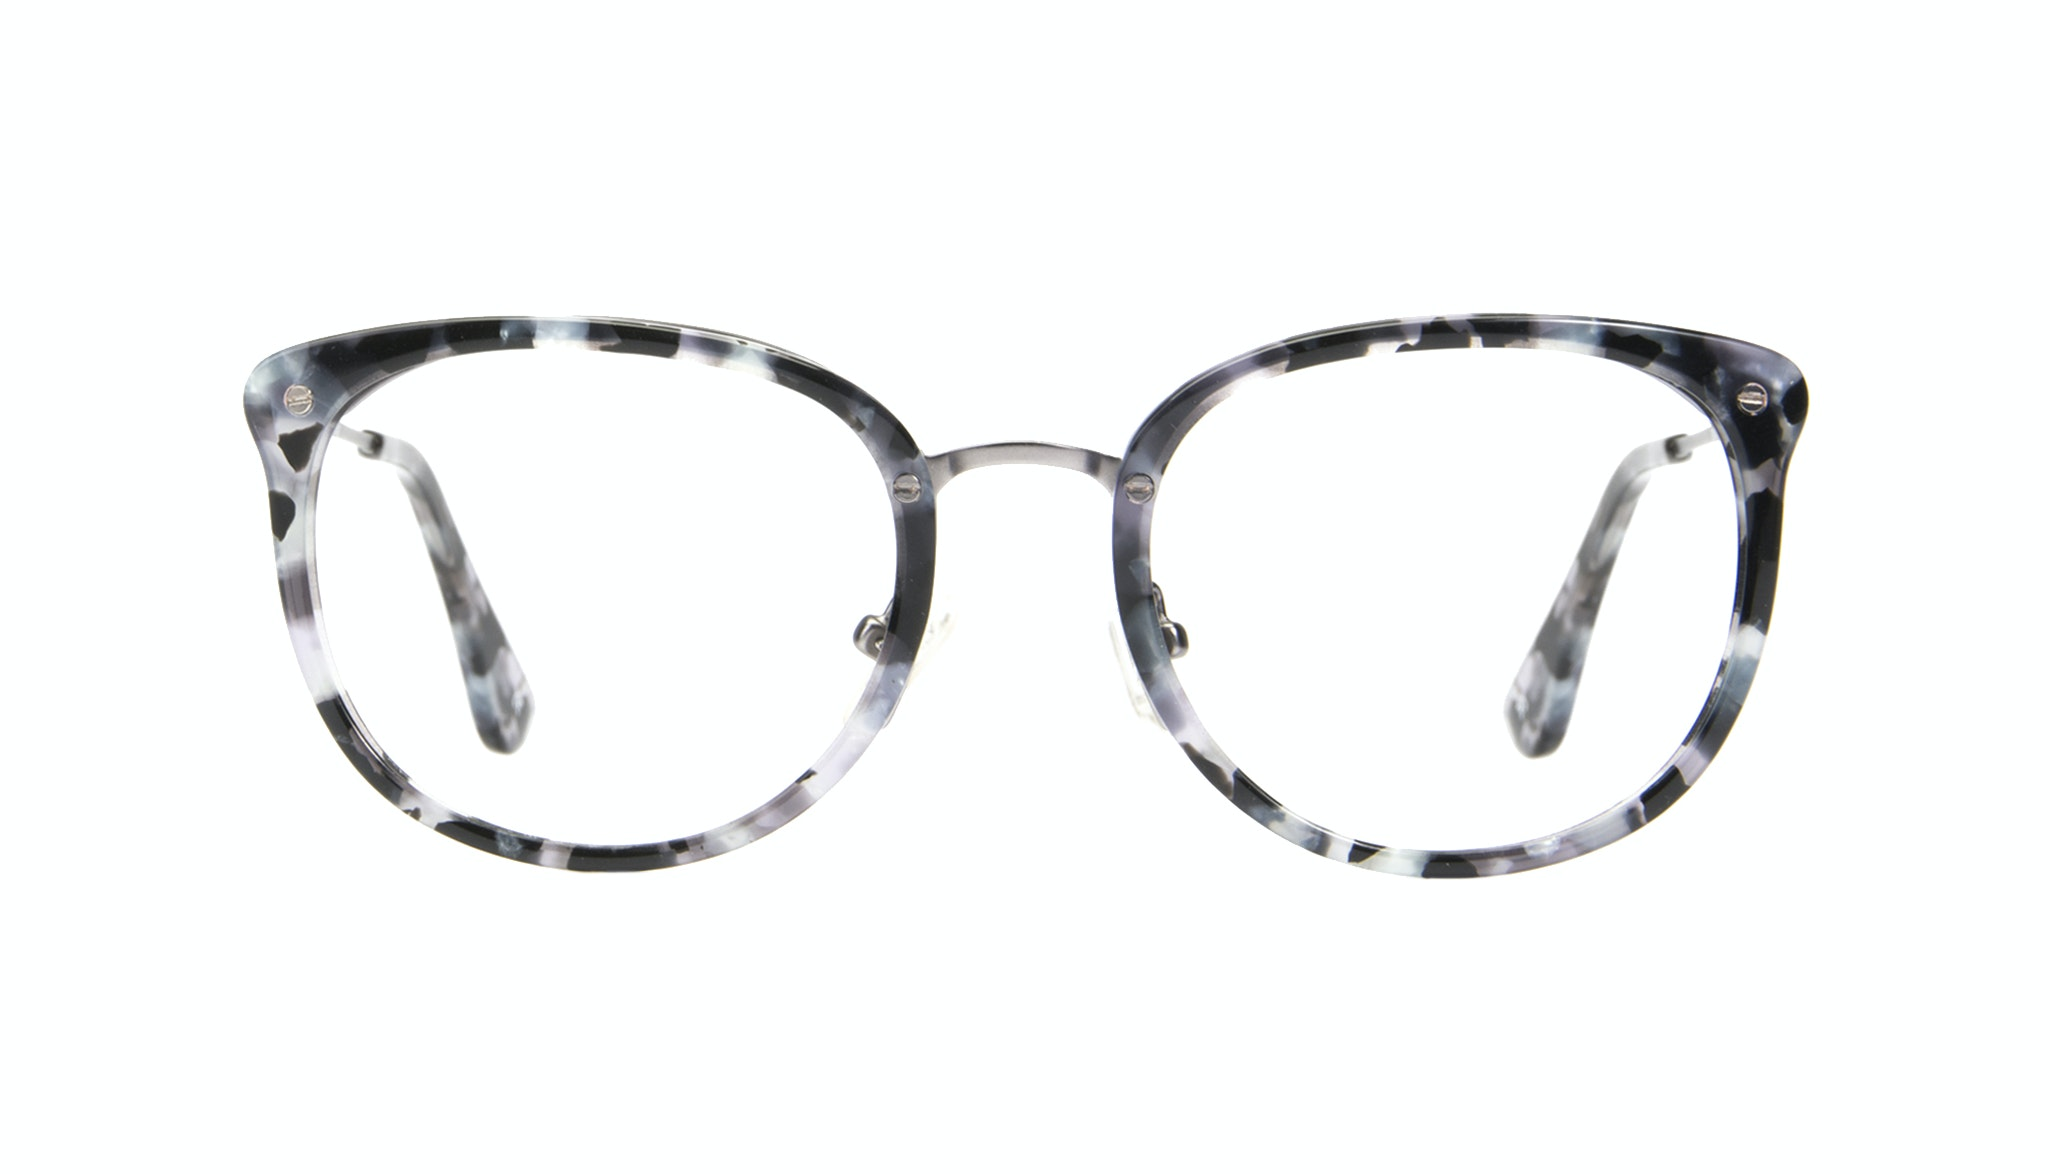 Affordable Fashion Glasses Round Eyeglasses Women Amaze Silver Flake